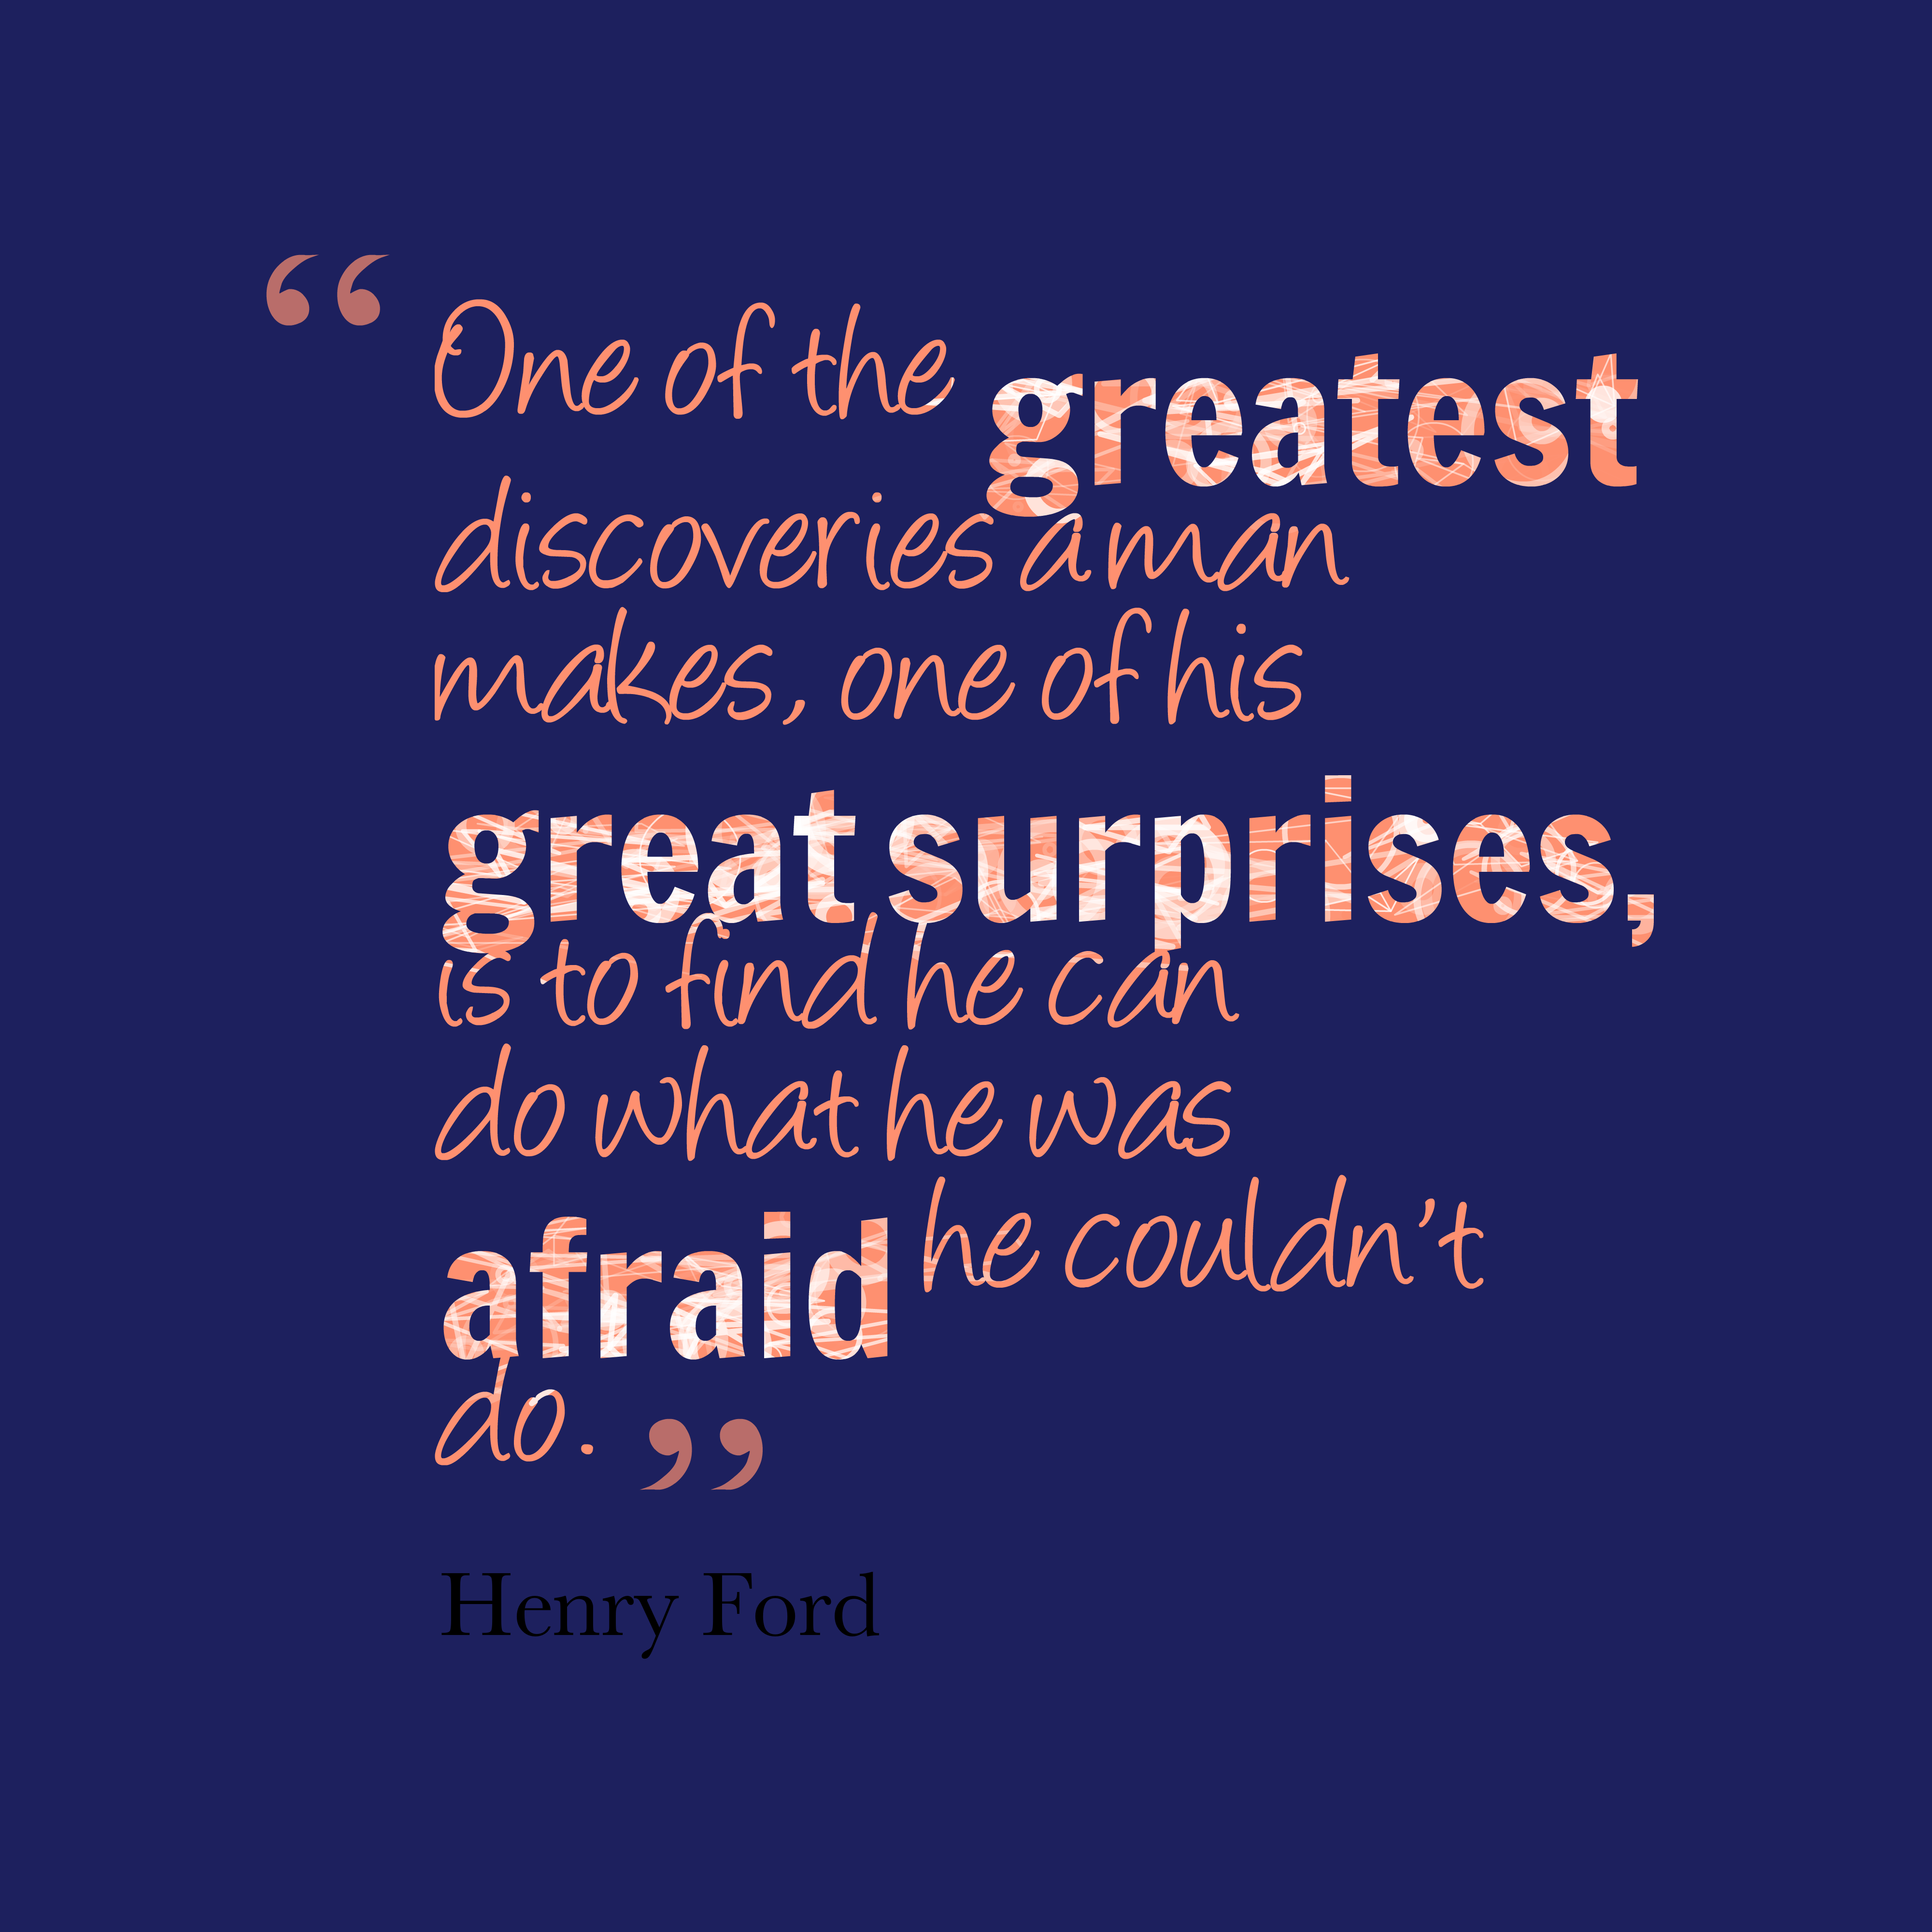 Henry Ford Quote About Fear